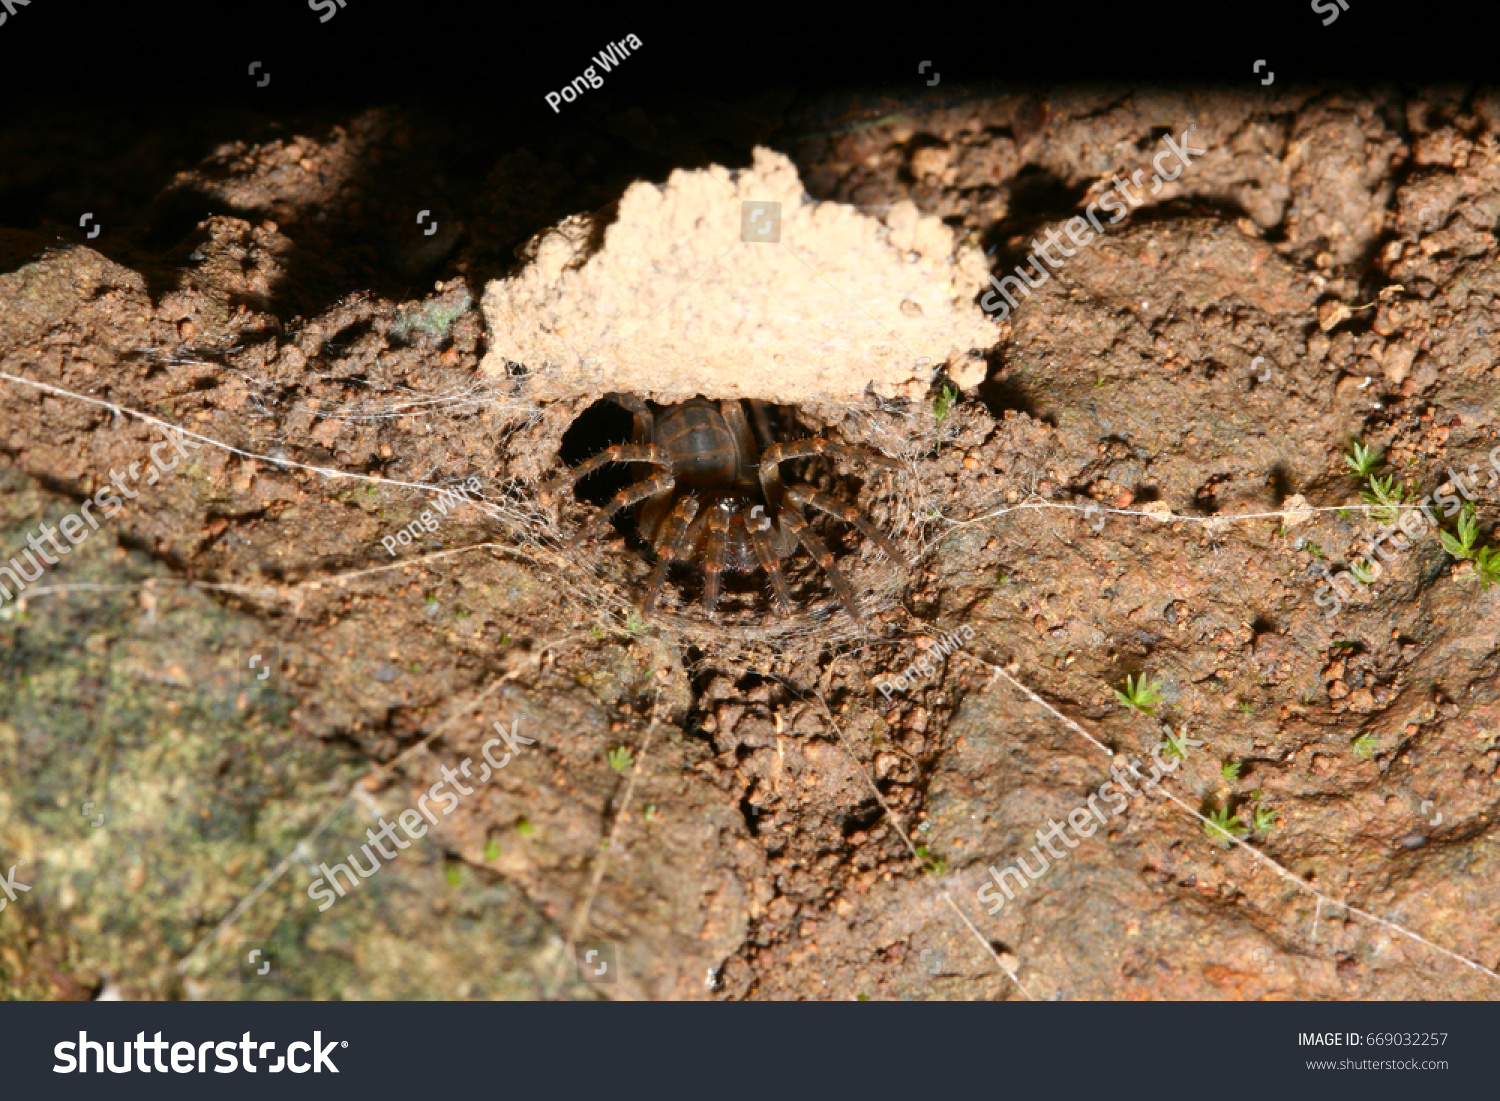 Trapdoor Spider Facts & Trapdoor Spiders Are Best Known For ...